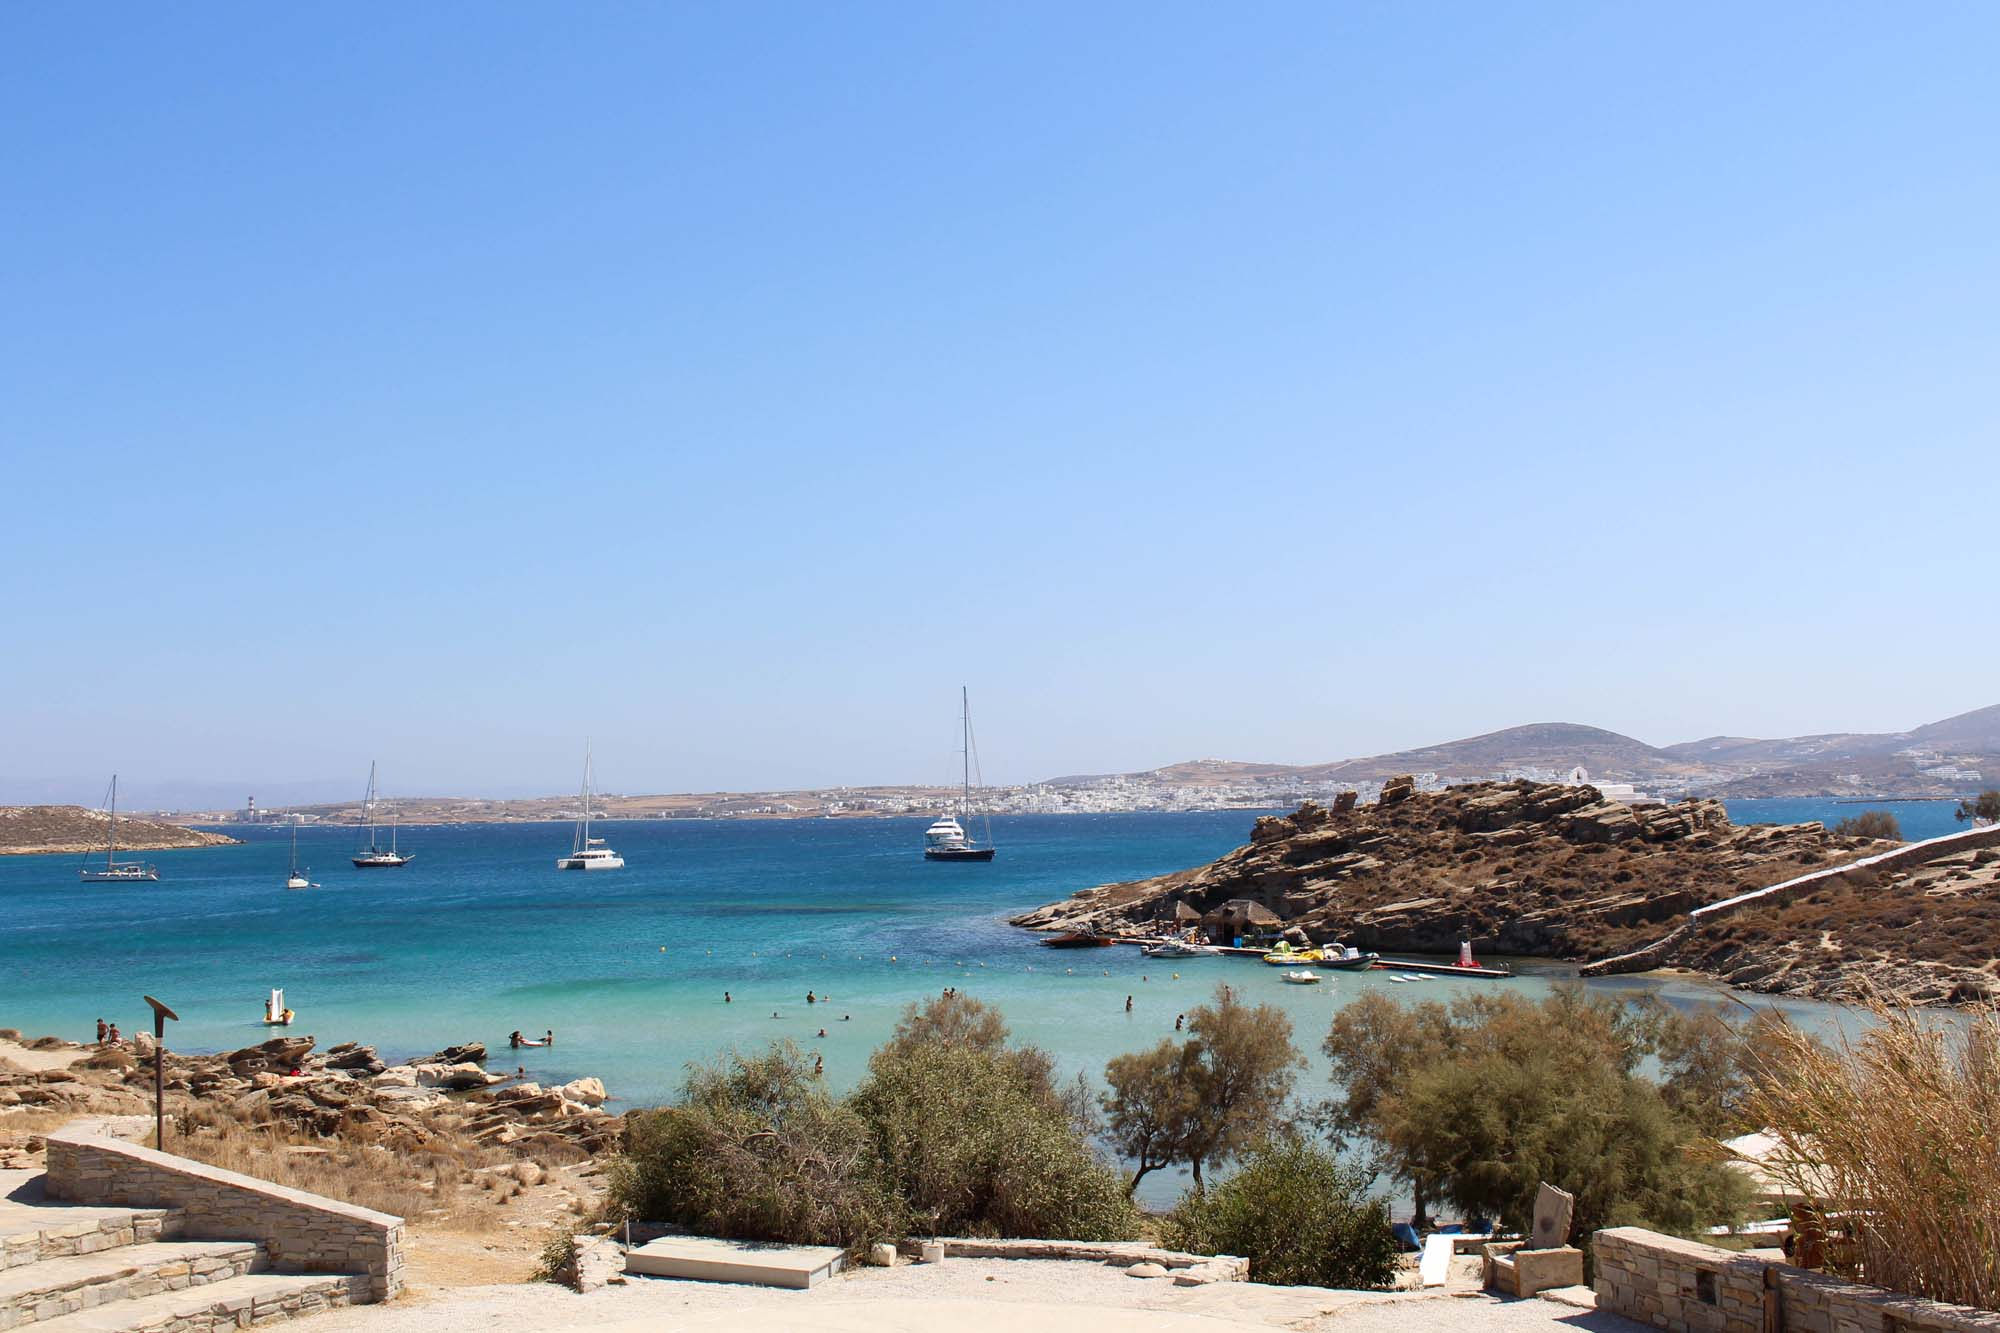 greece-paros-travel-linstantflo-15-sur-39